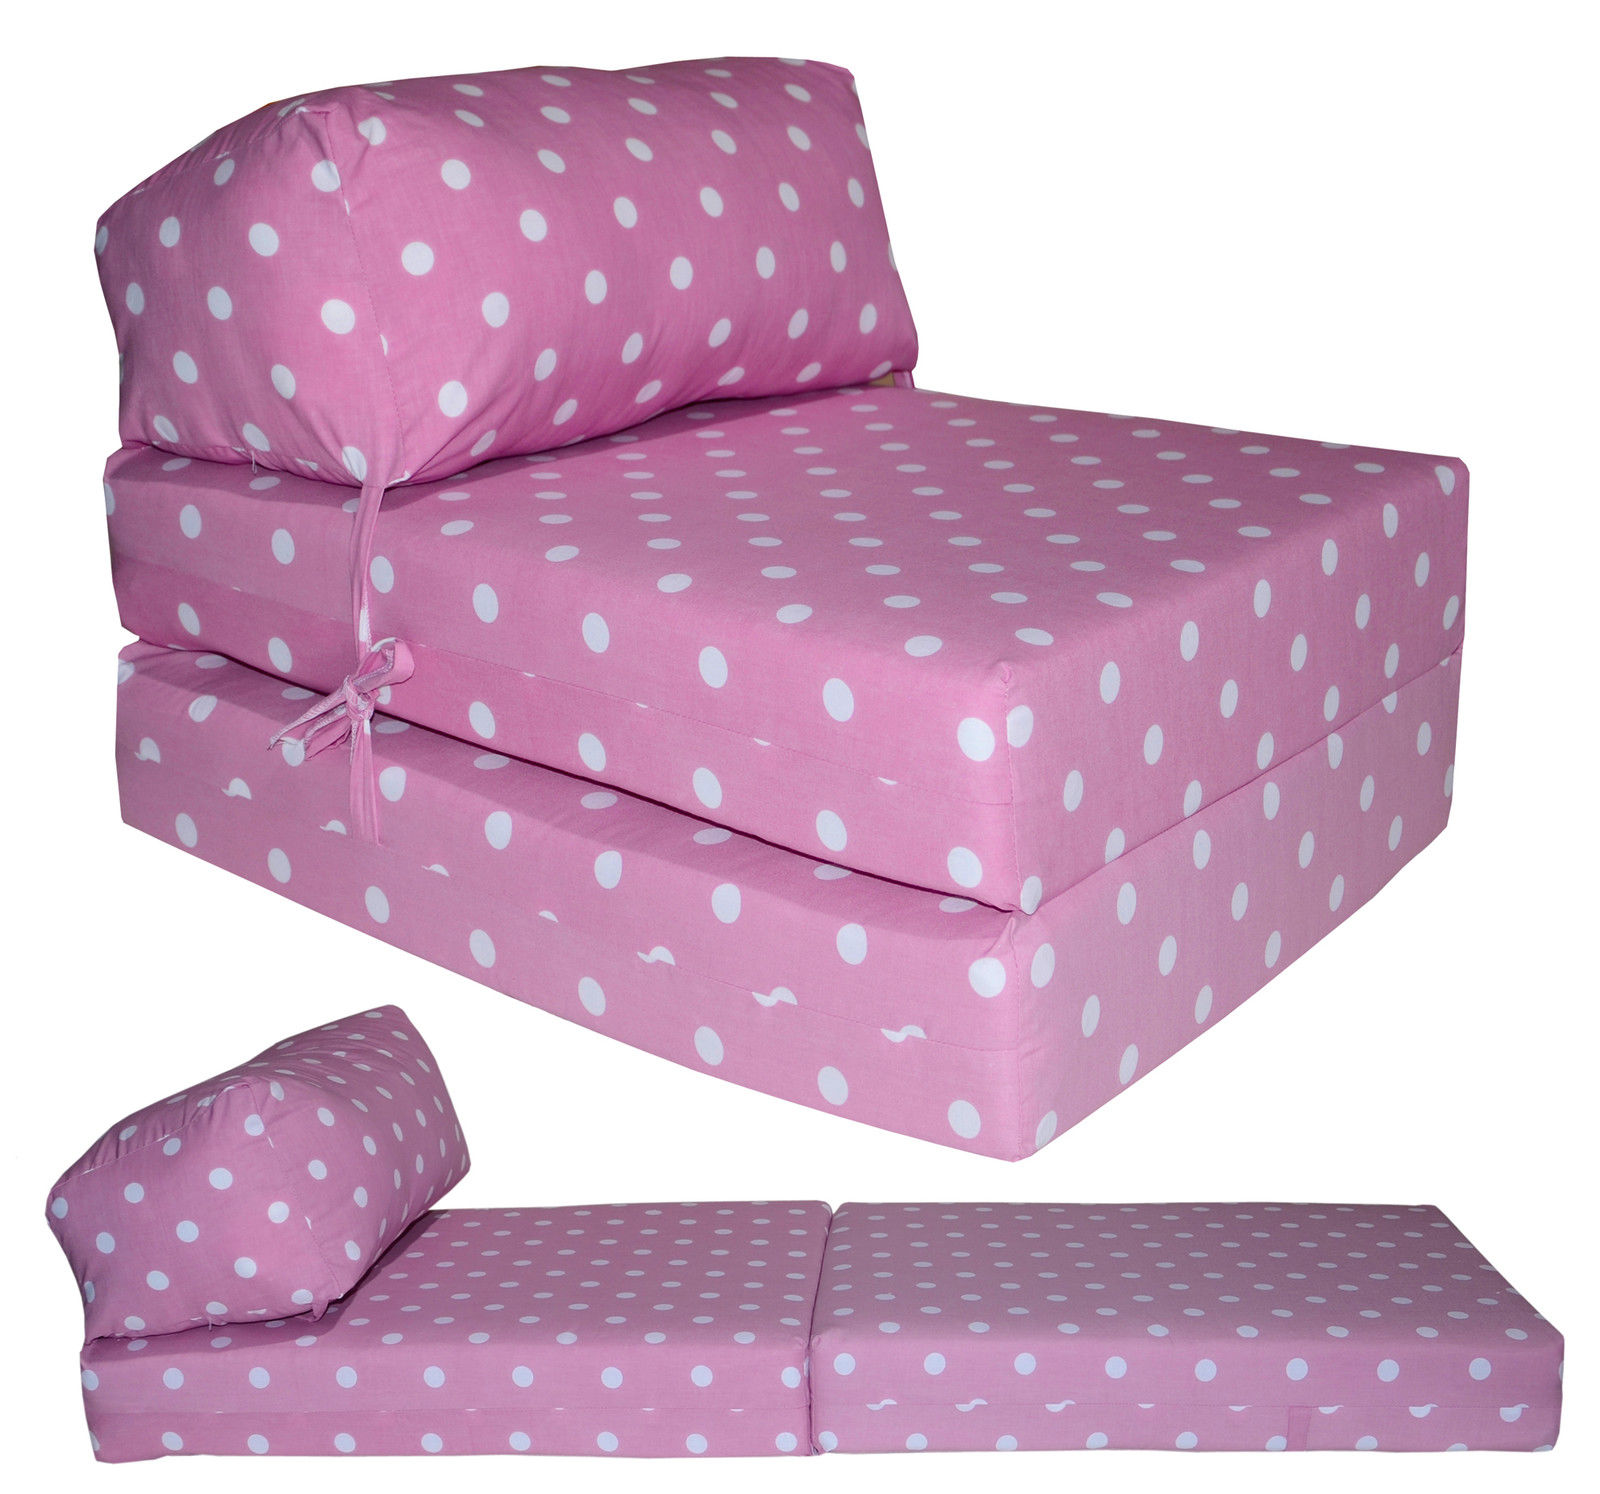 Cotton print fold out chair bed £19 99 plus £5 95 delivery